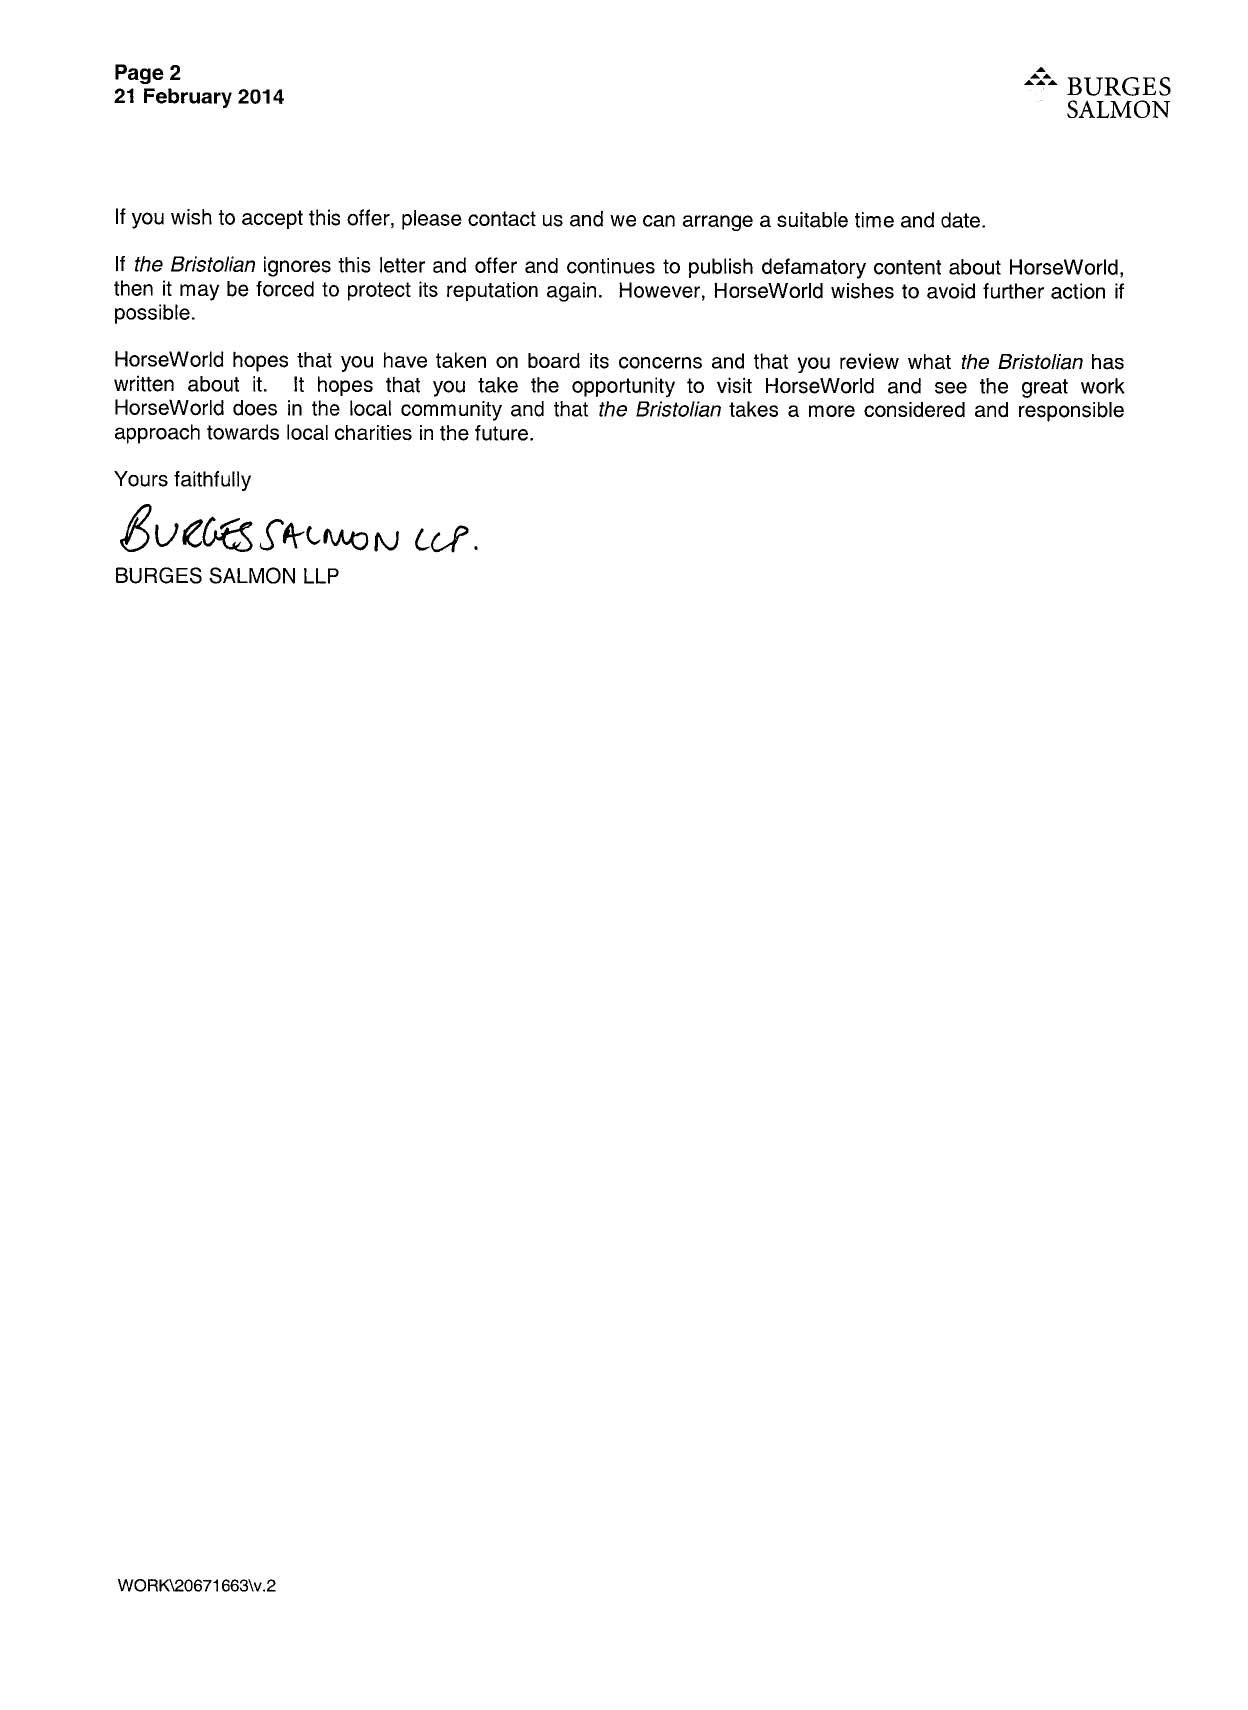 resignation letter template ireland  The Chugger   The BRISTOLIAN - resignation letter template ireland